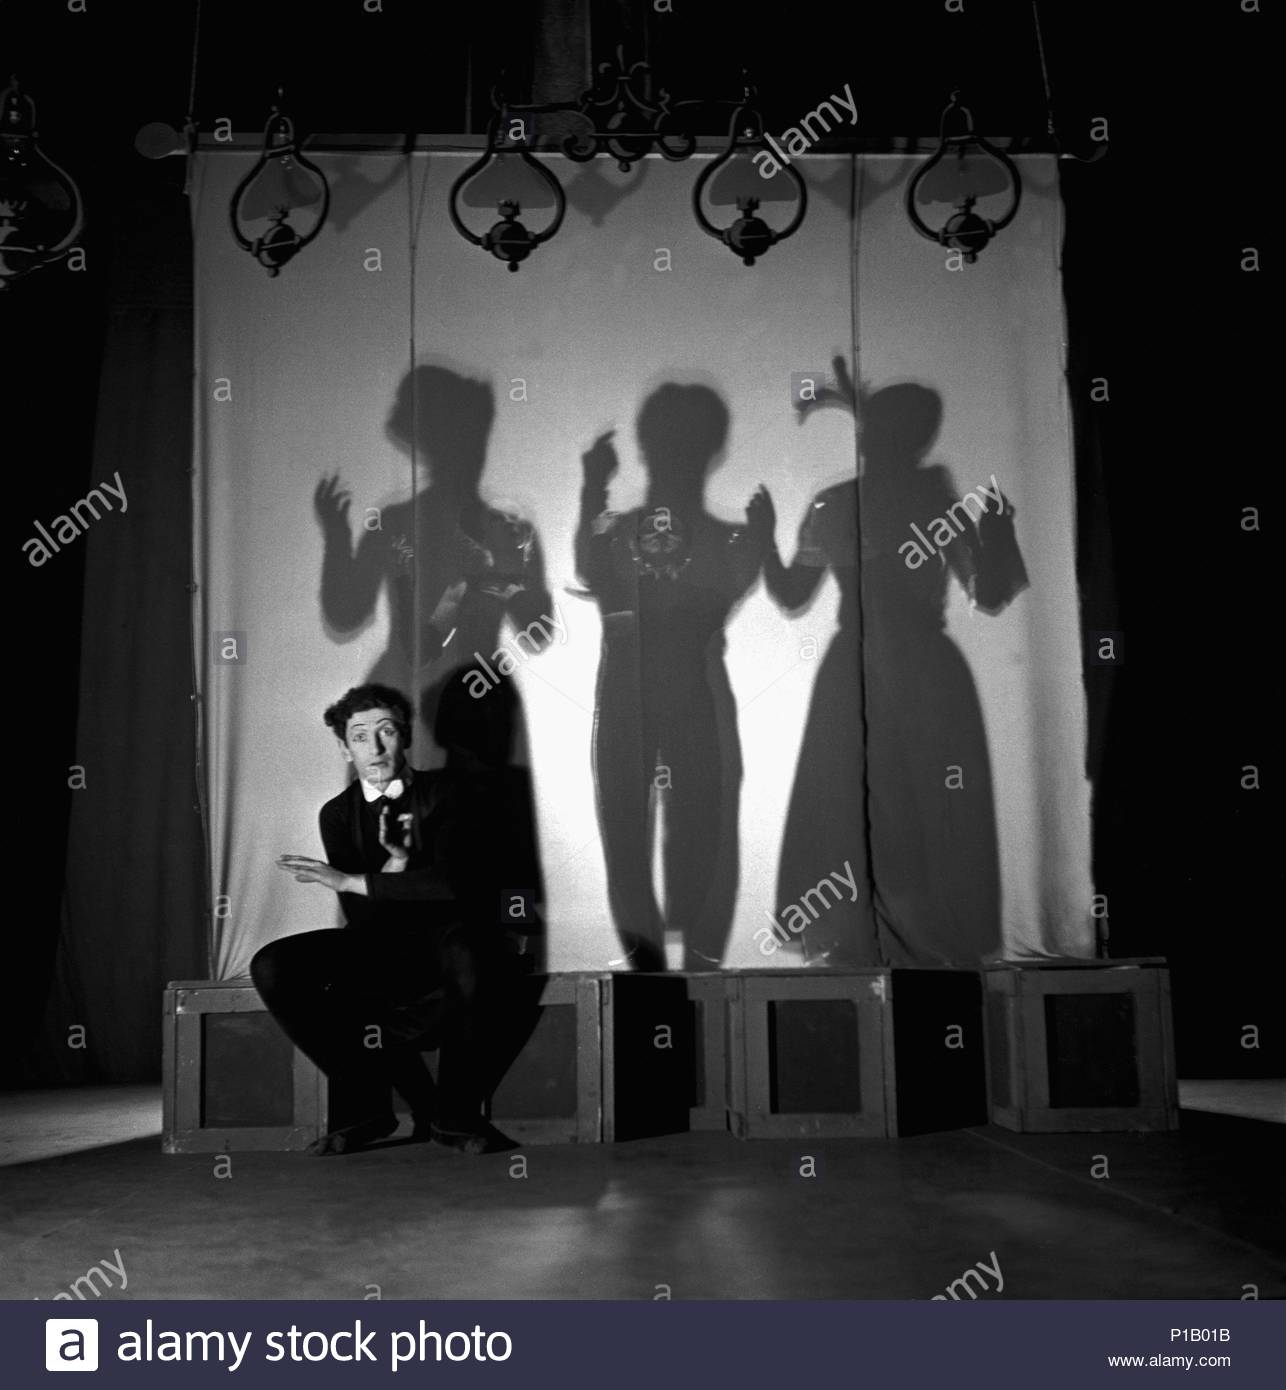 """Marcel Marceau, the French mime who created the figure of """" Bip"""", a tragic white clown, during a performance in his theatre. Paris,1951. Author: Erich Lessing (b. 1923). Location: Townscape, Paris, France. - Stock Image"""